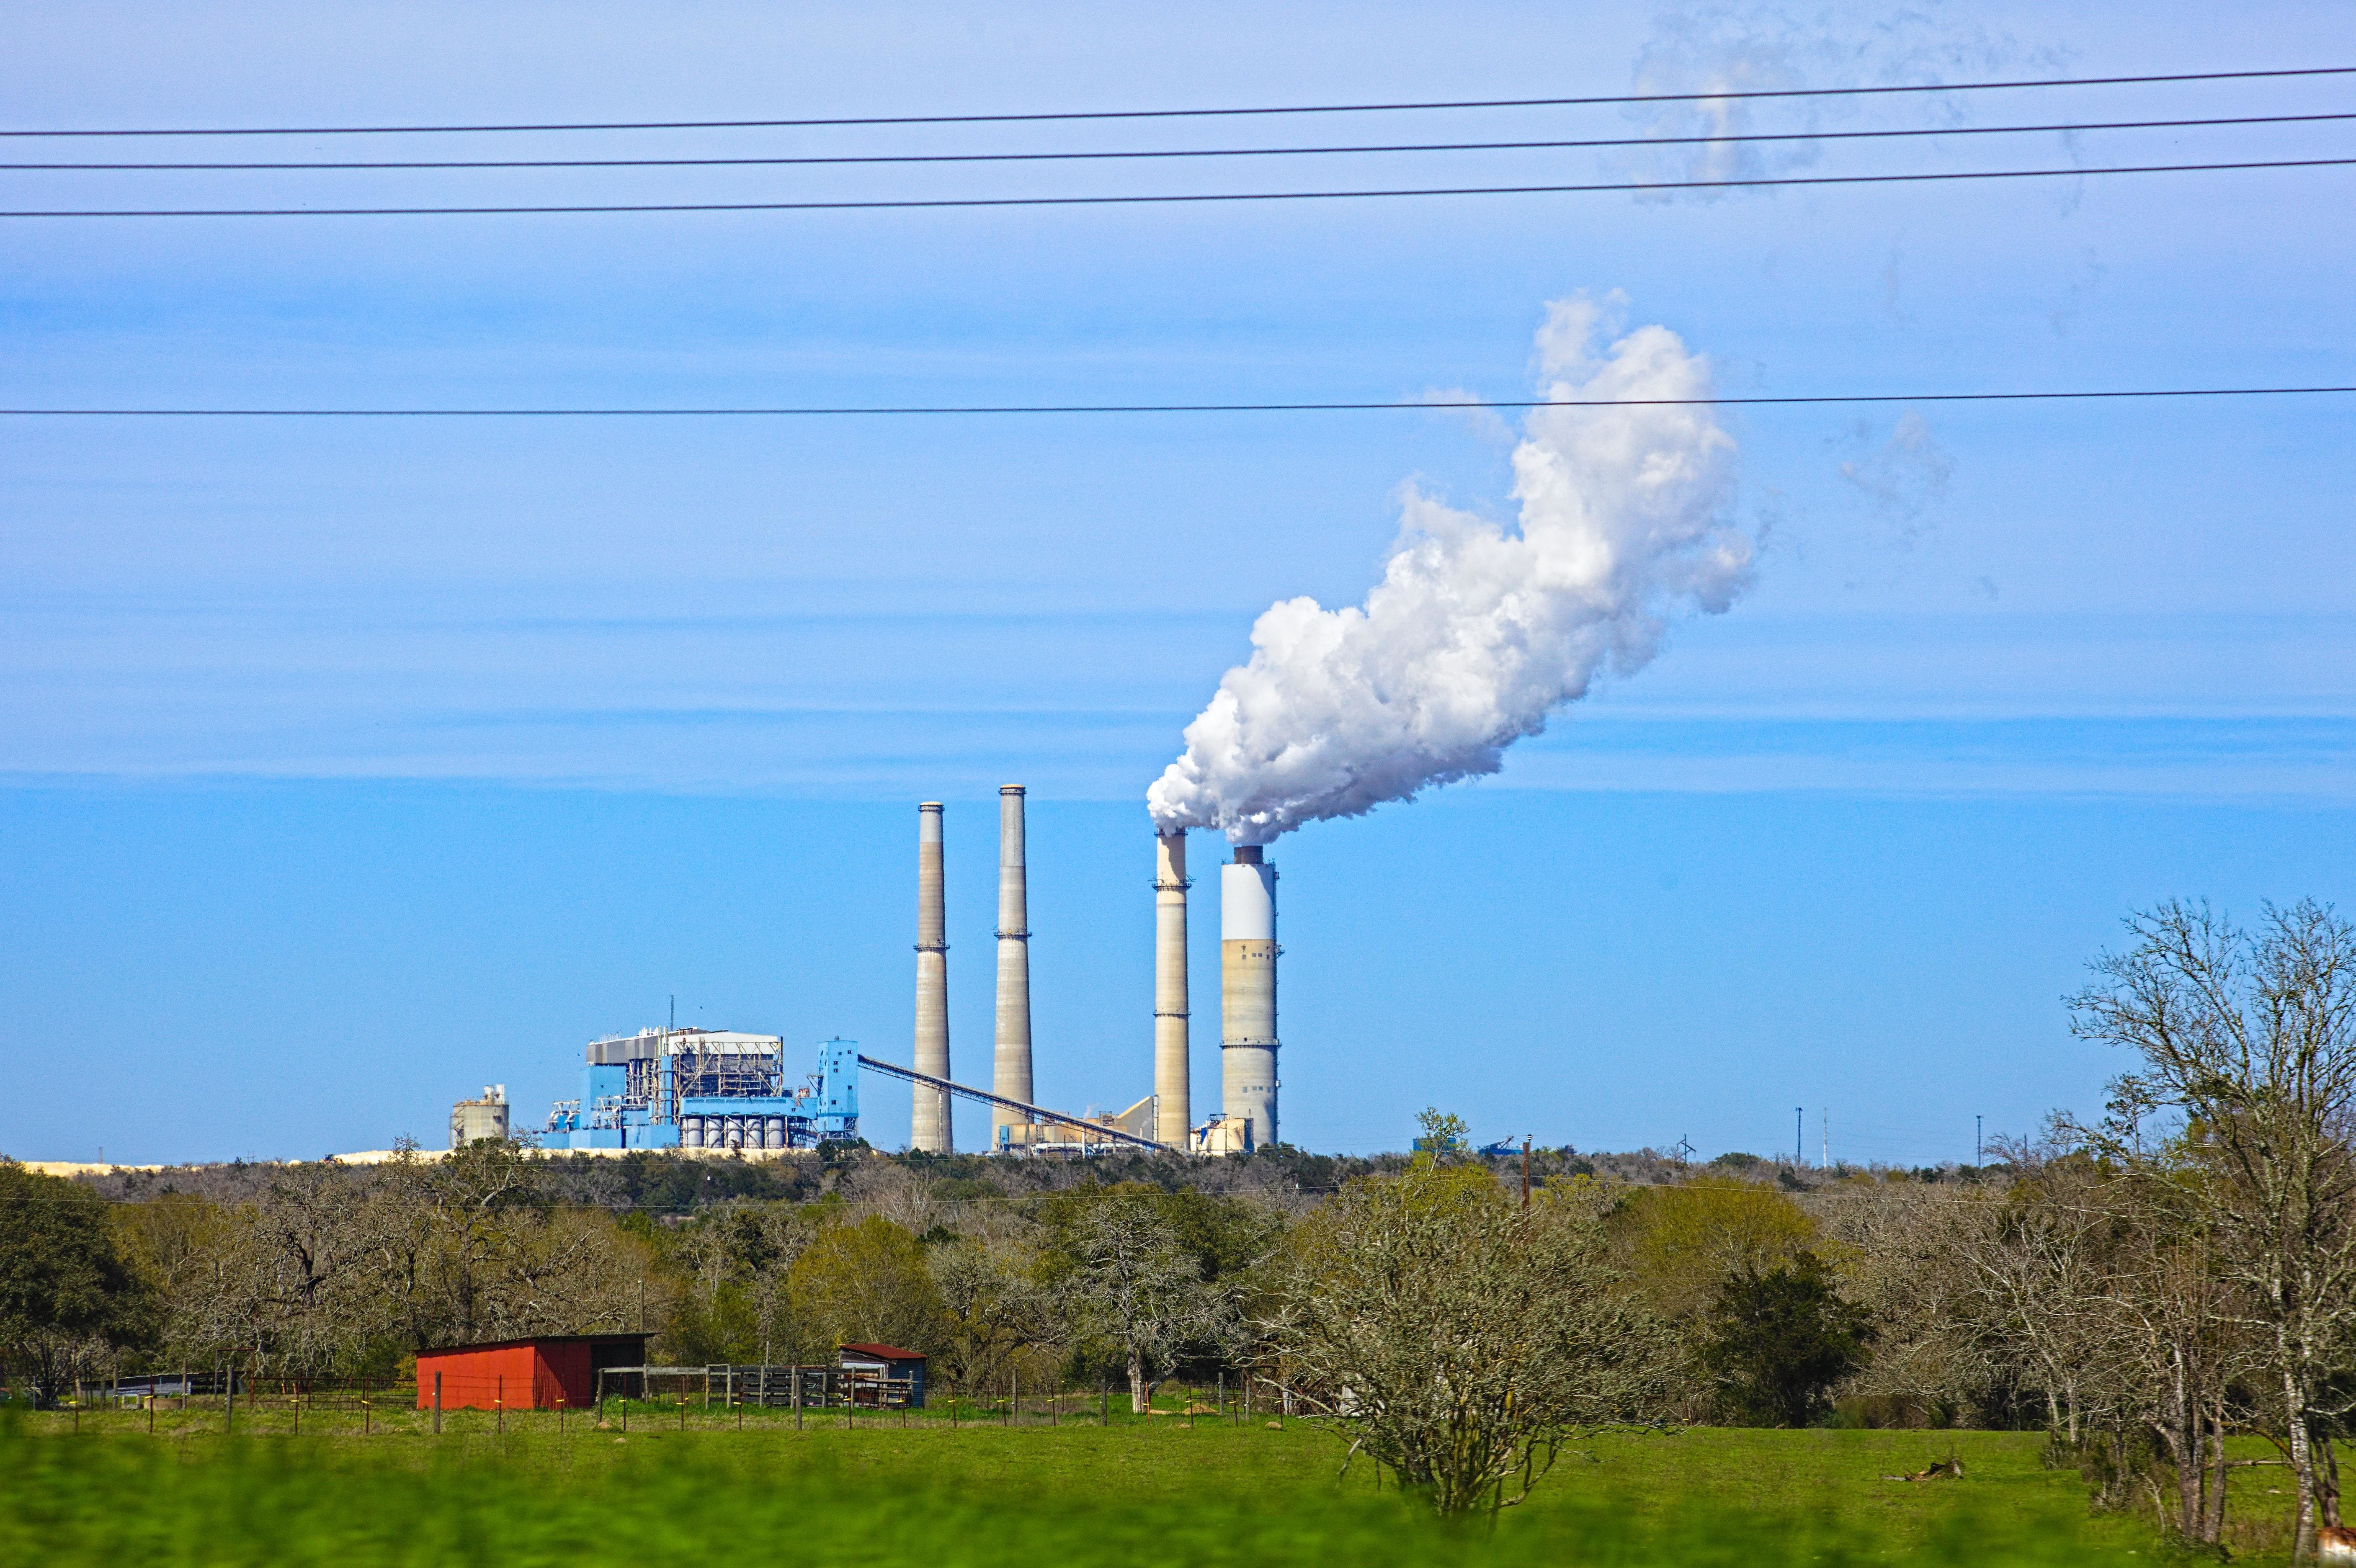 coal power, shown here, is being phased out as part of the attempt to save the planet